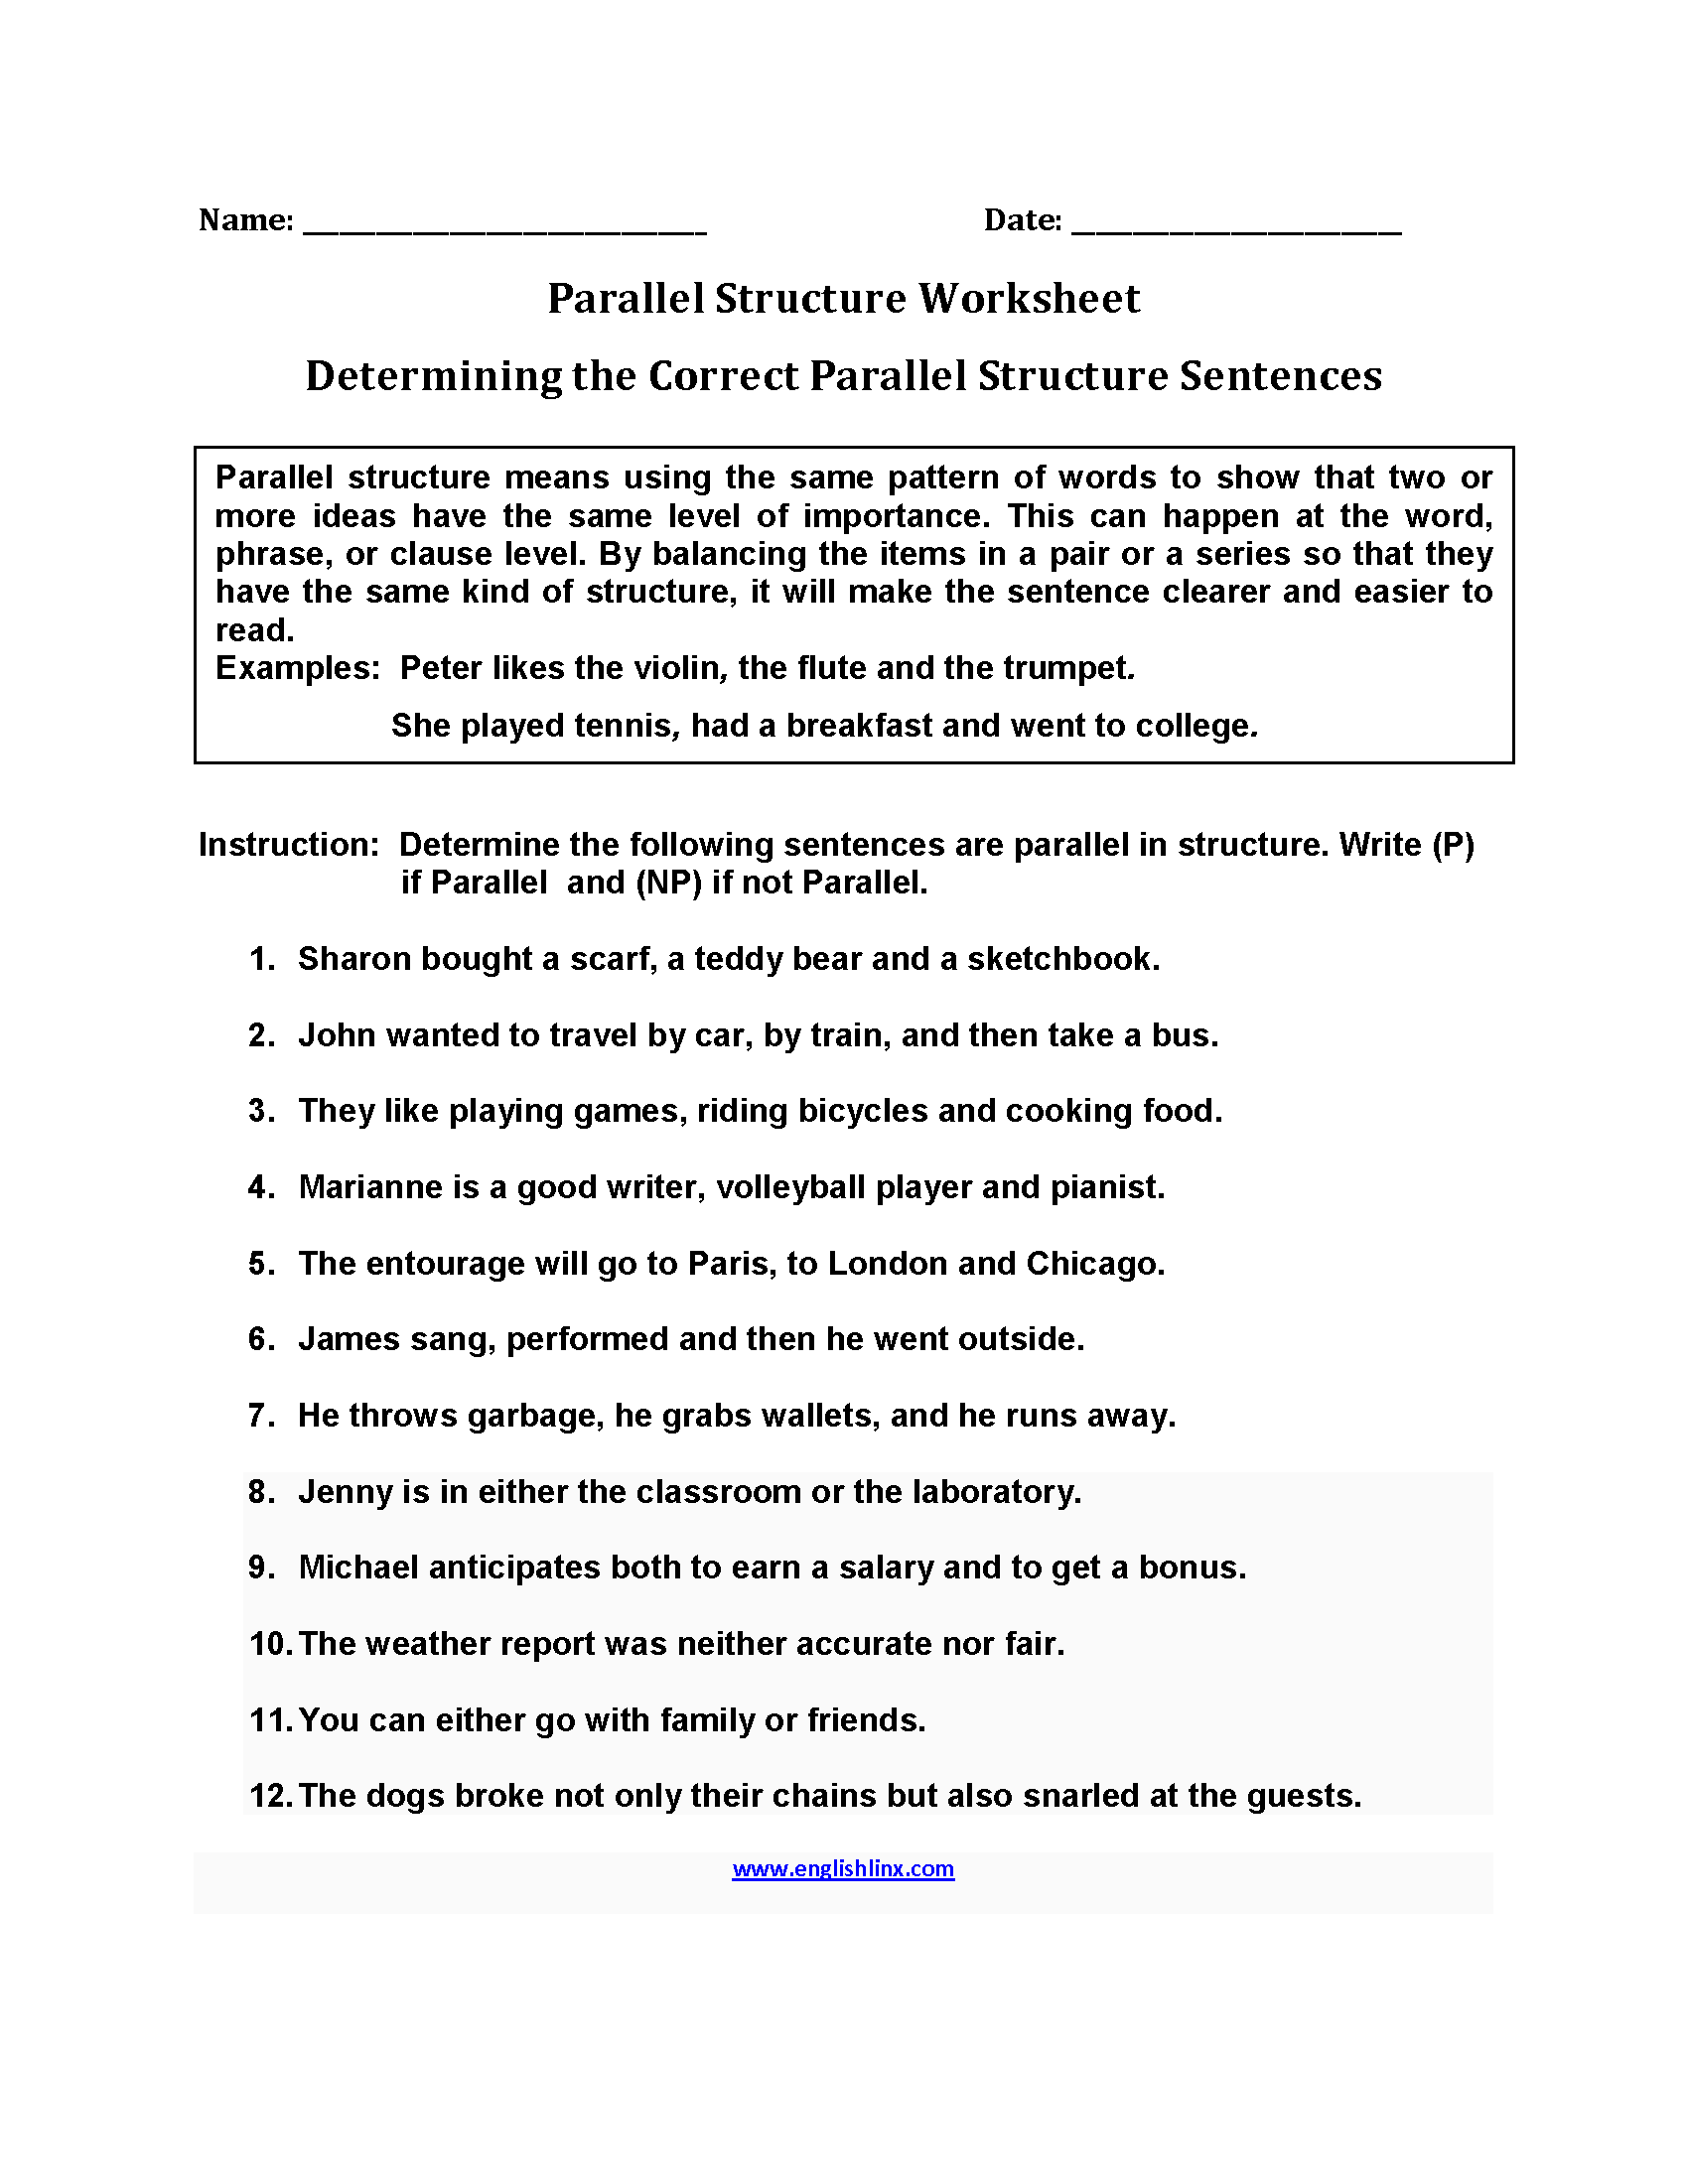 Determining Parallel Structure Worksheets